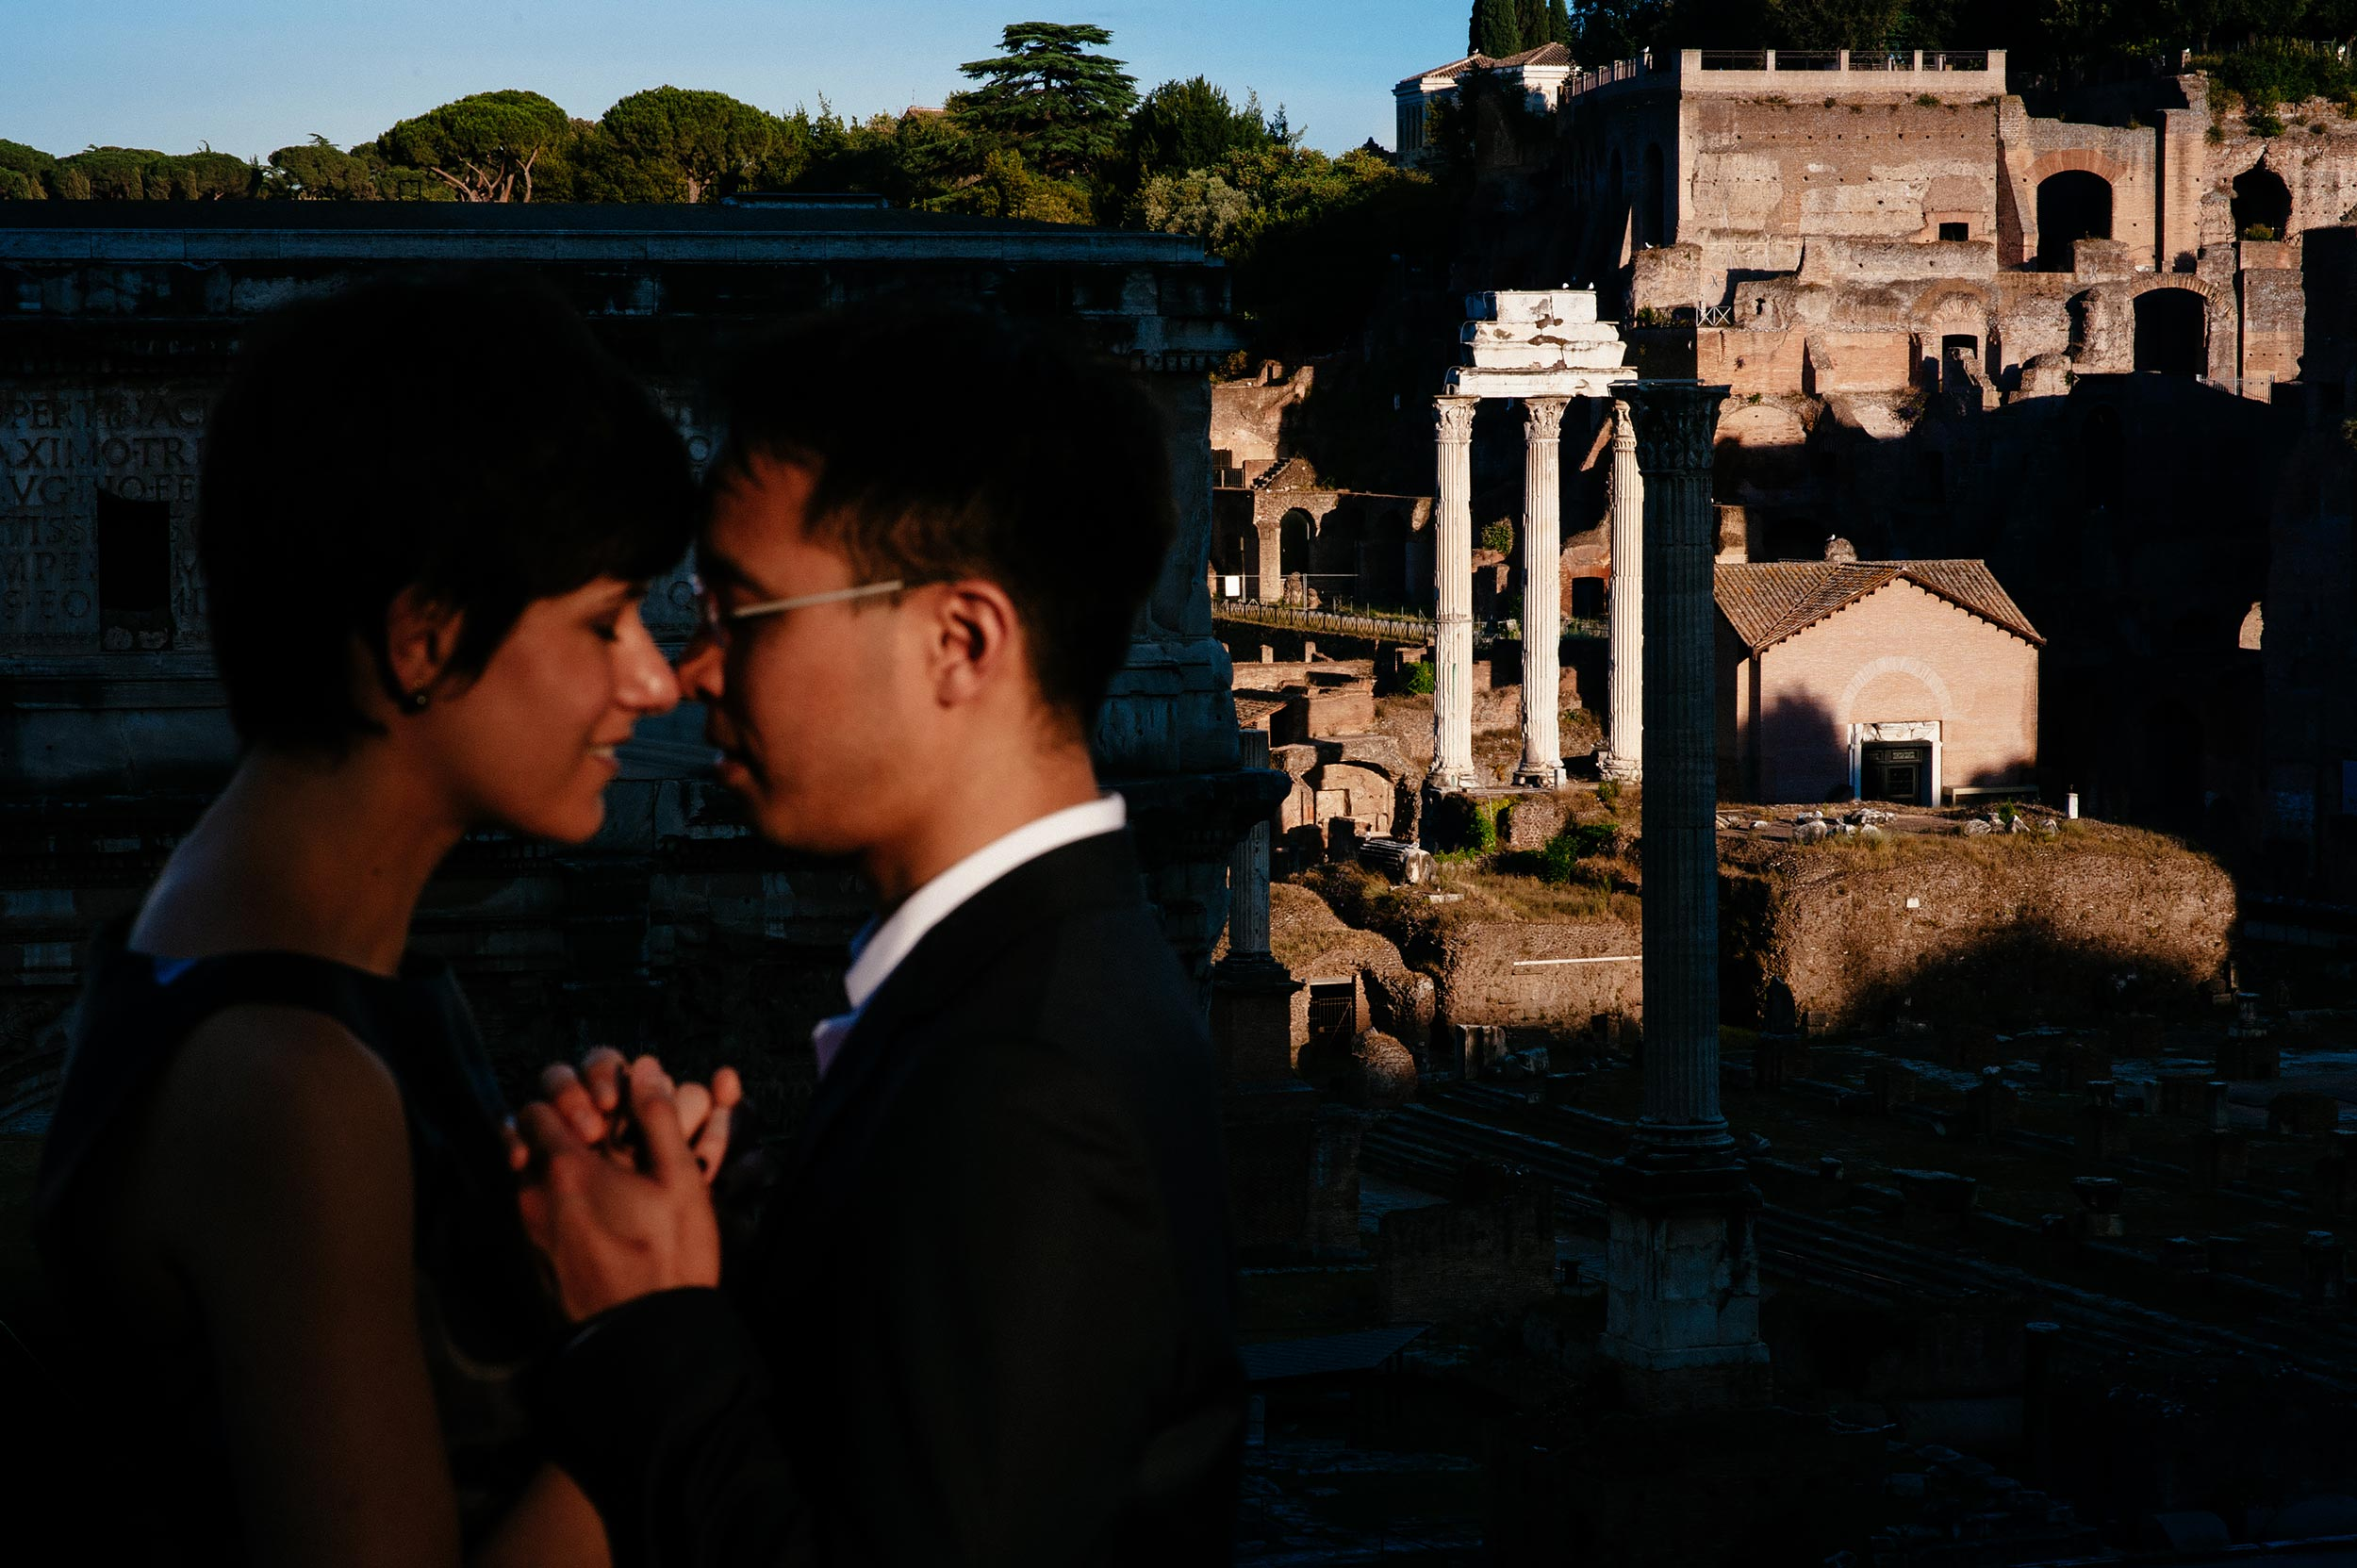 romantic-honeymoon-portrait-rome-imperial-forum-at-sunset-wedding-photography.jpg